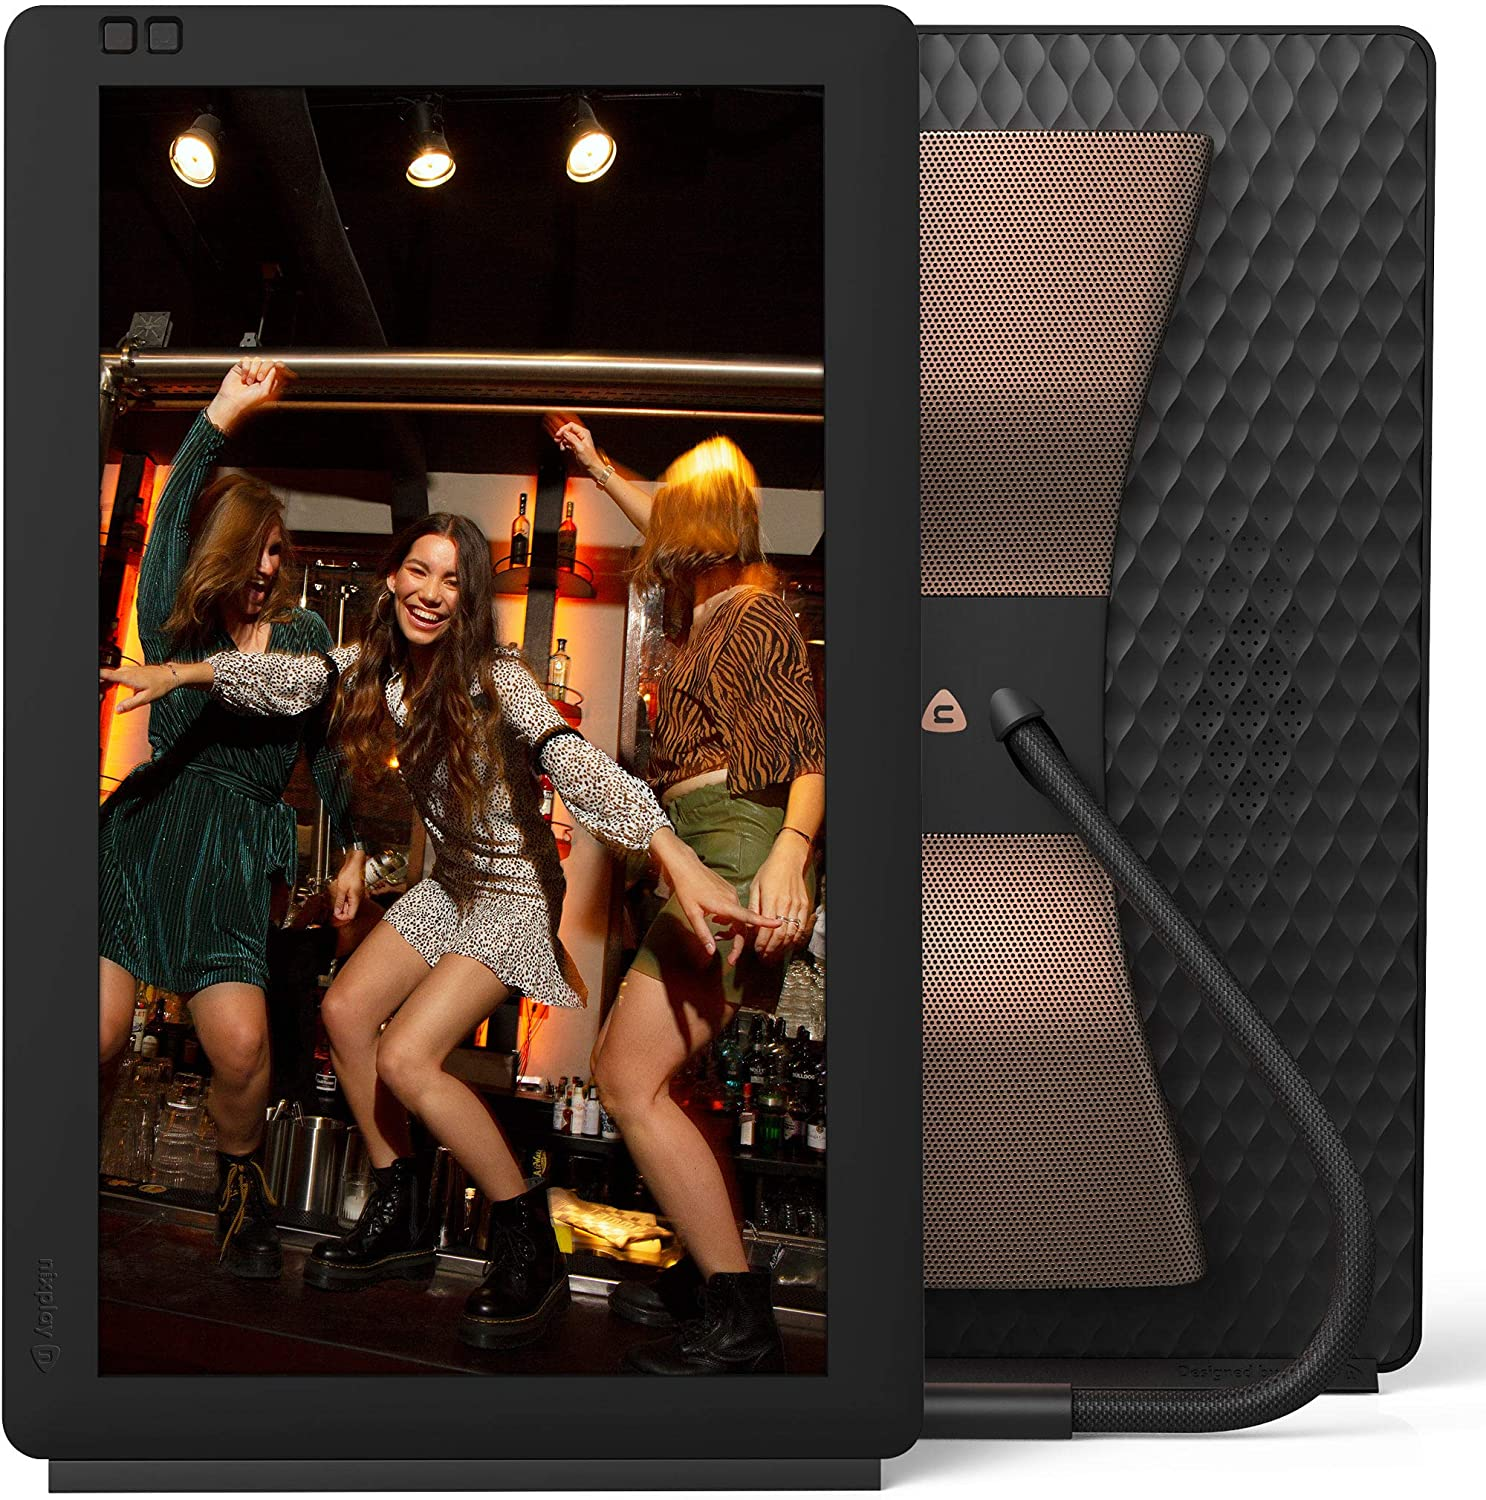 Nixplay Seed Wave 13.3 Inch WiFi Digital Picture Frame with Bluetooth Speakers, Share Moments Instantly via App or E-Mail : Electronics